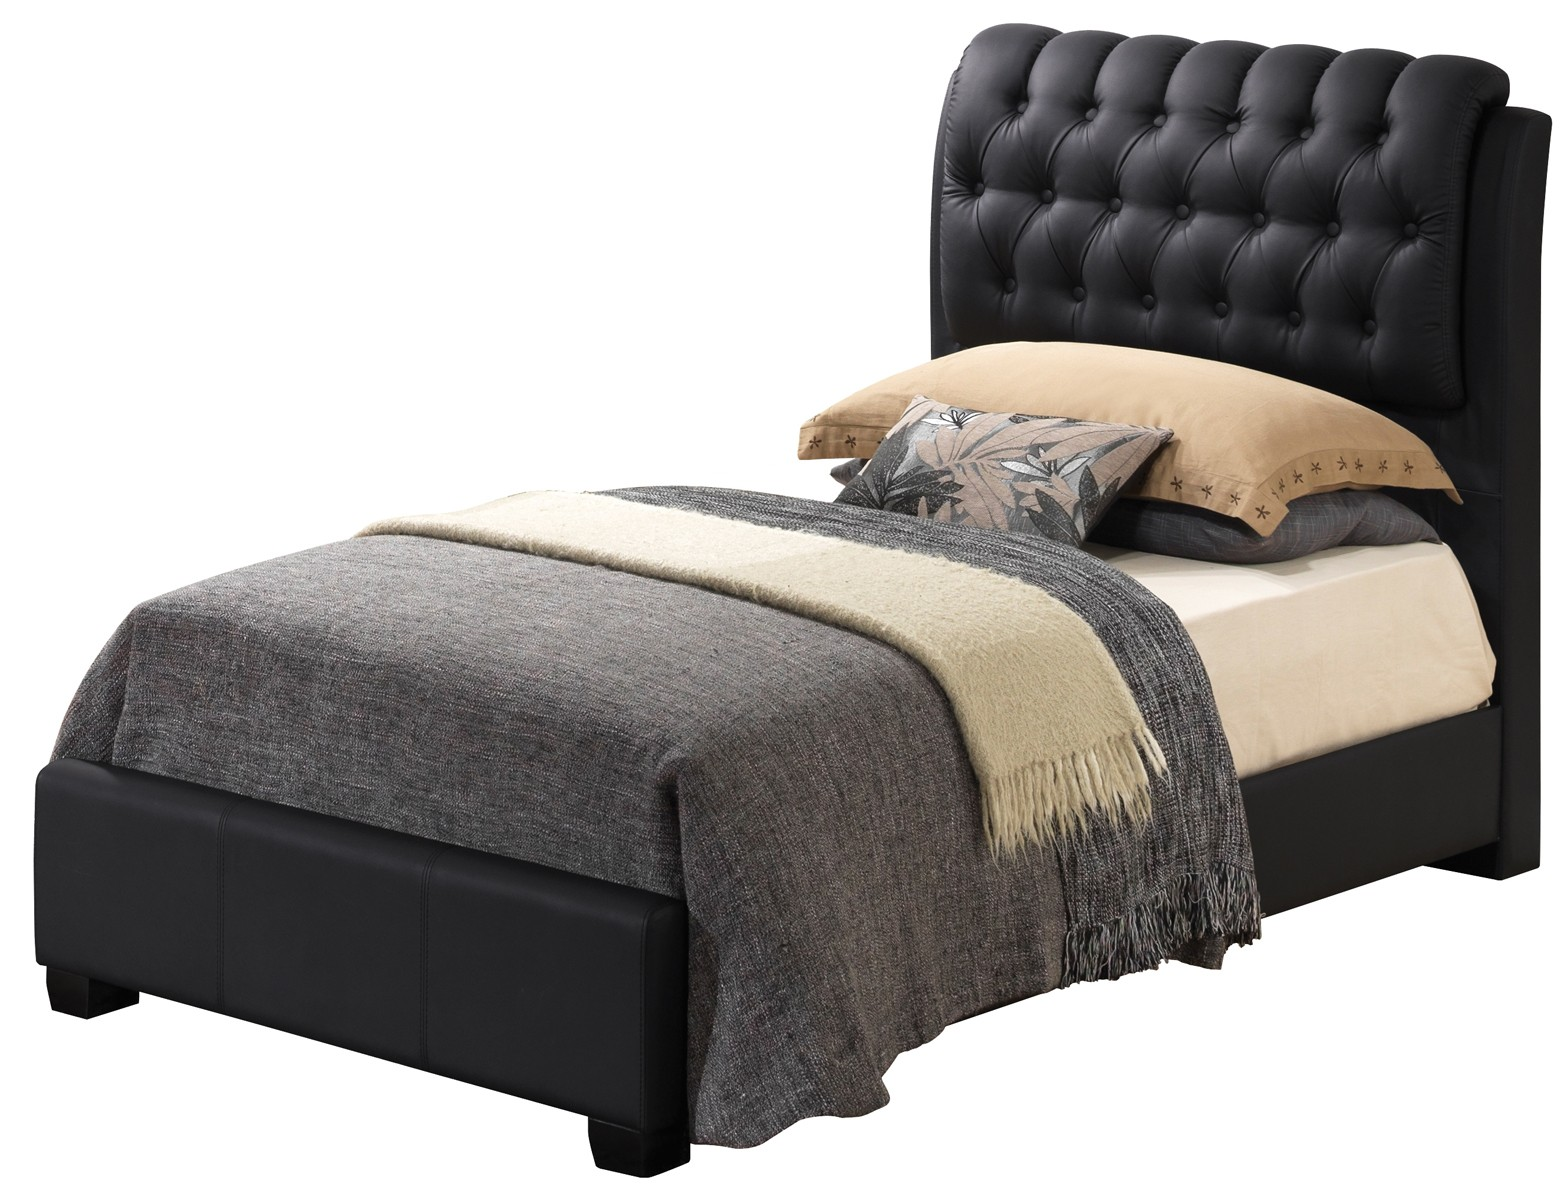 Glory Furniture G1500 Button-Tufted Bedroom Set In Black